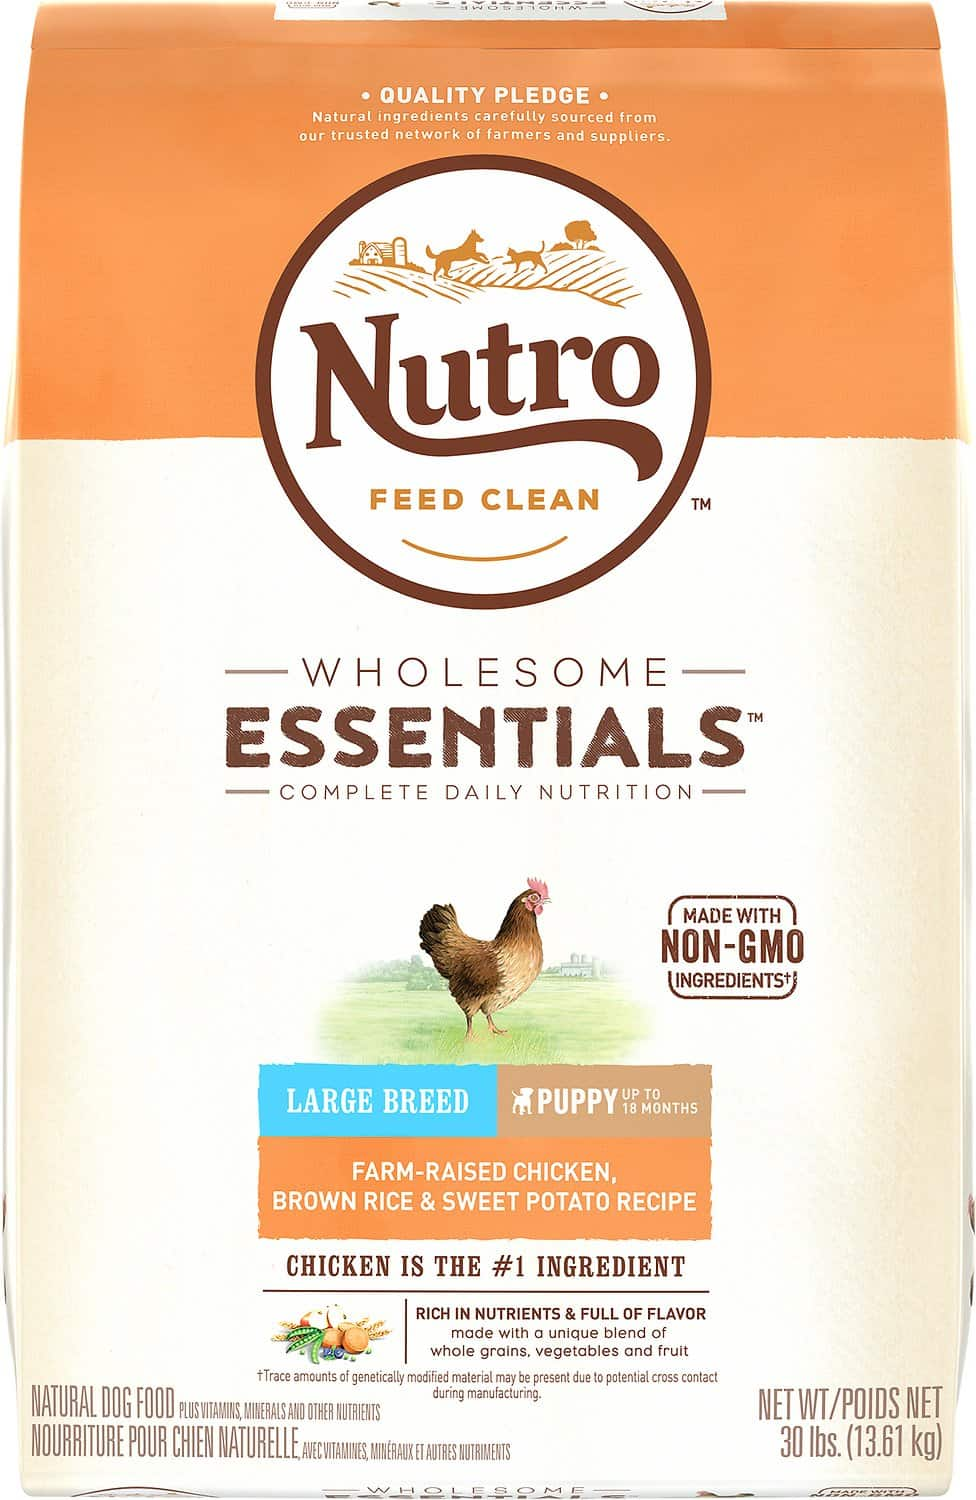 Nutro Whole Essentials Large Breed Puppy Dry Dog Food